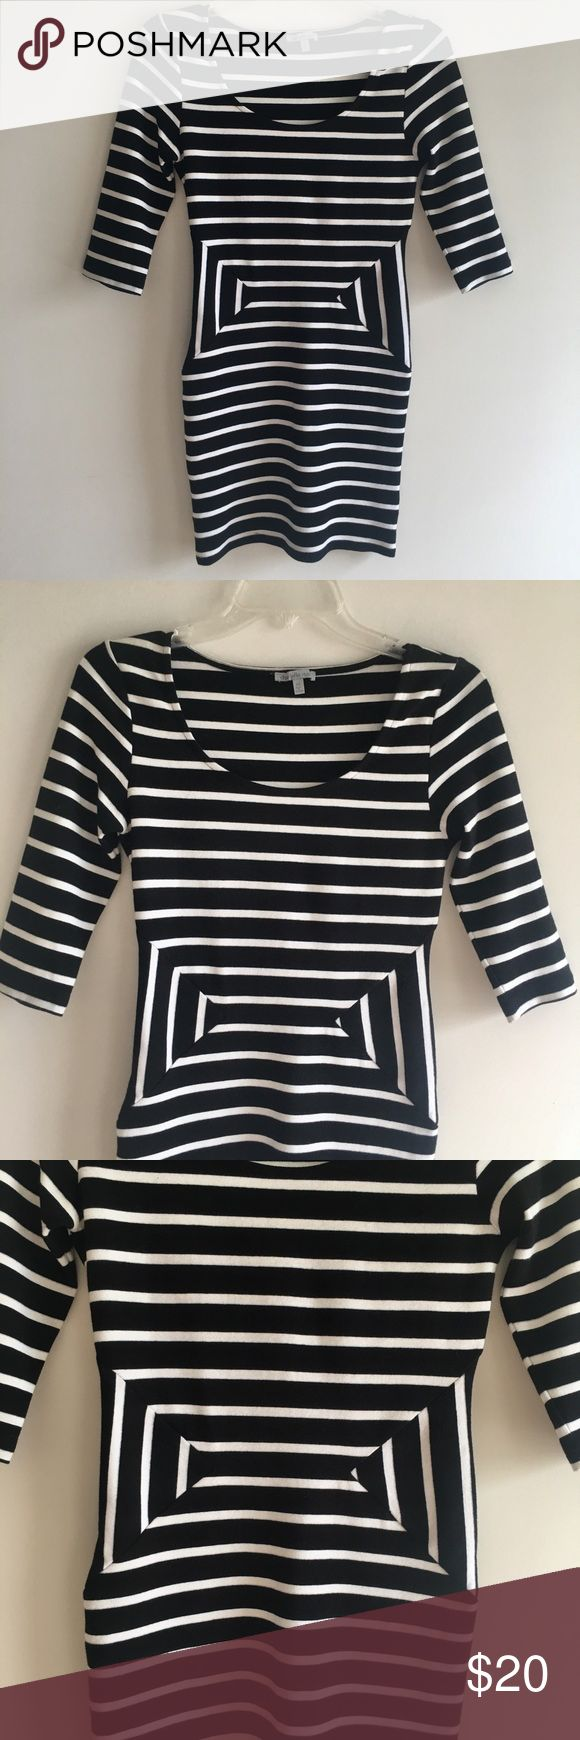 Charlotte Russe Stripe Bodycon Dress Super comfortable, bodycon dress! In very good, pre-loved condition! 95% cotton, 5% spandex. Charlotte Russe Dresses Mini